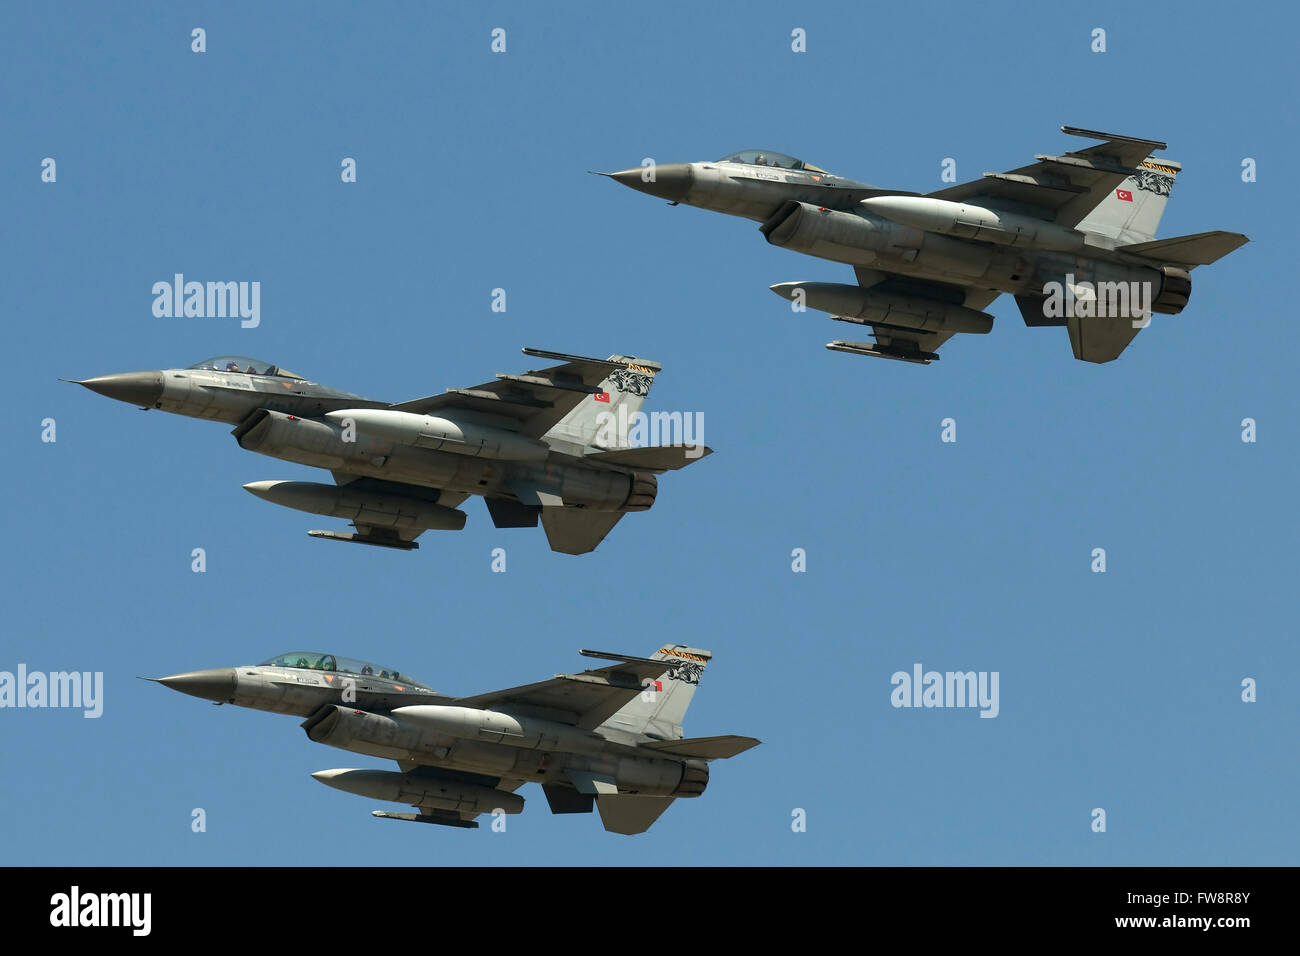 A formation of Turkish Air Force F-16C/D aircraft during the 100th Anniversary of the Turkish Air Force. - Stock Image